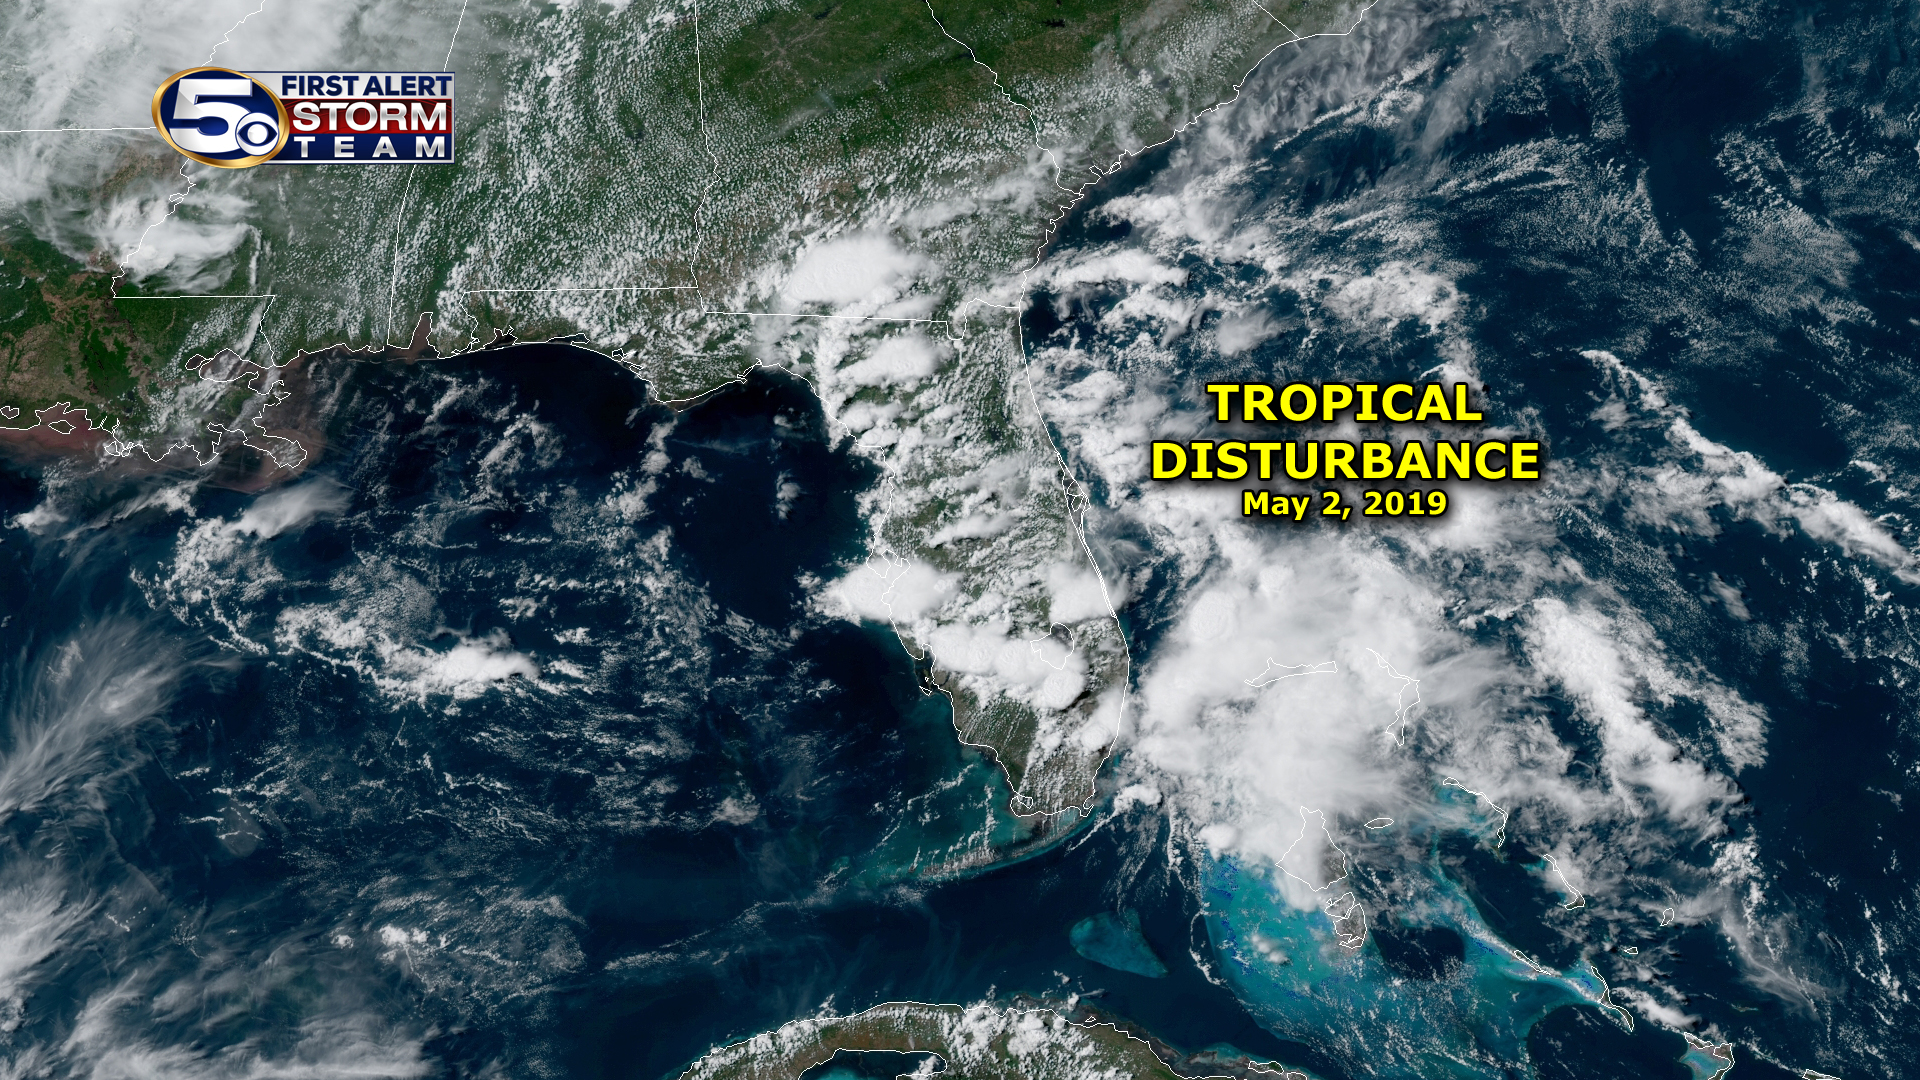 Tropical Disturbance in May 2019